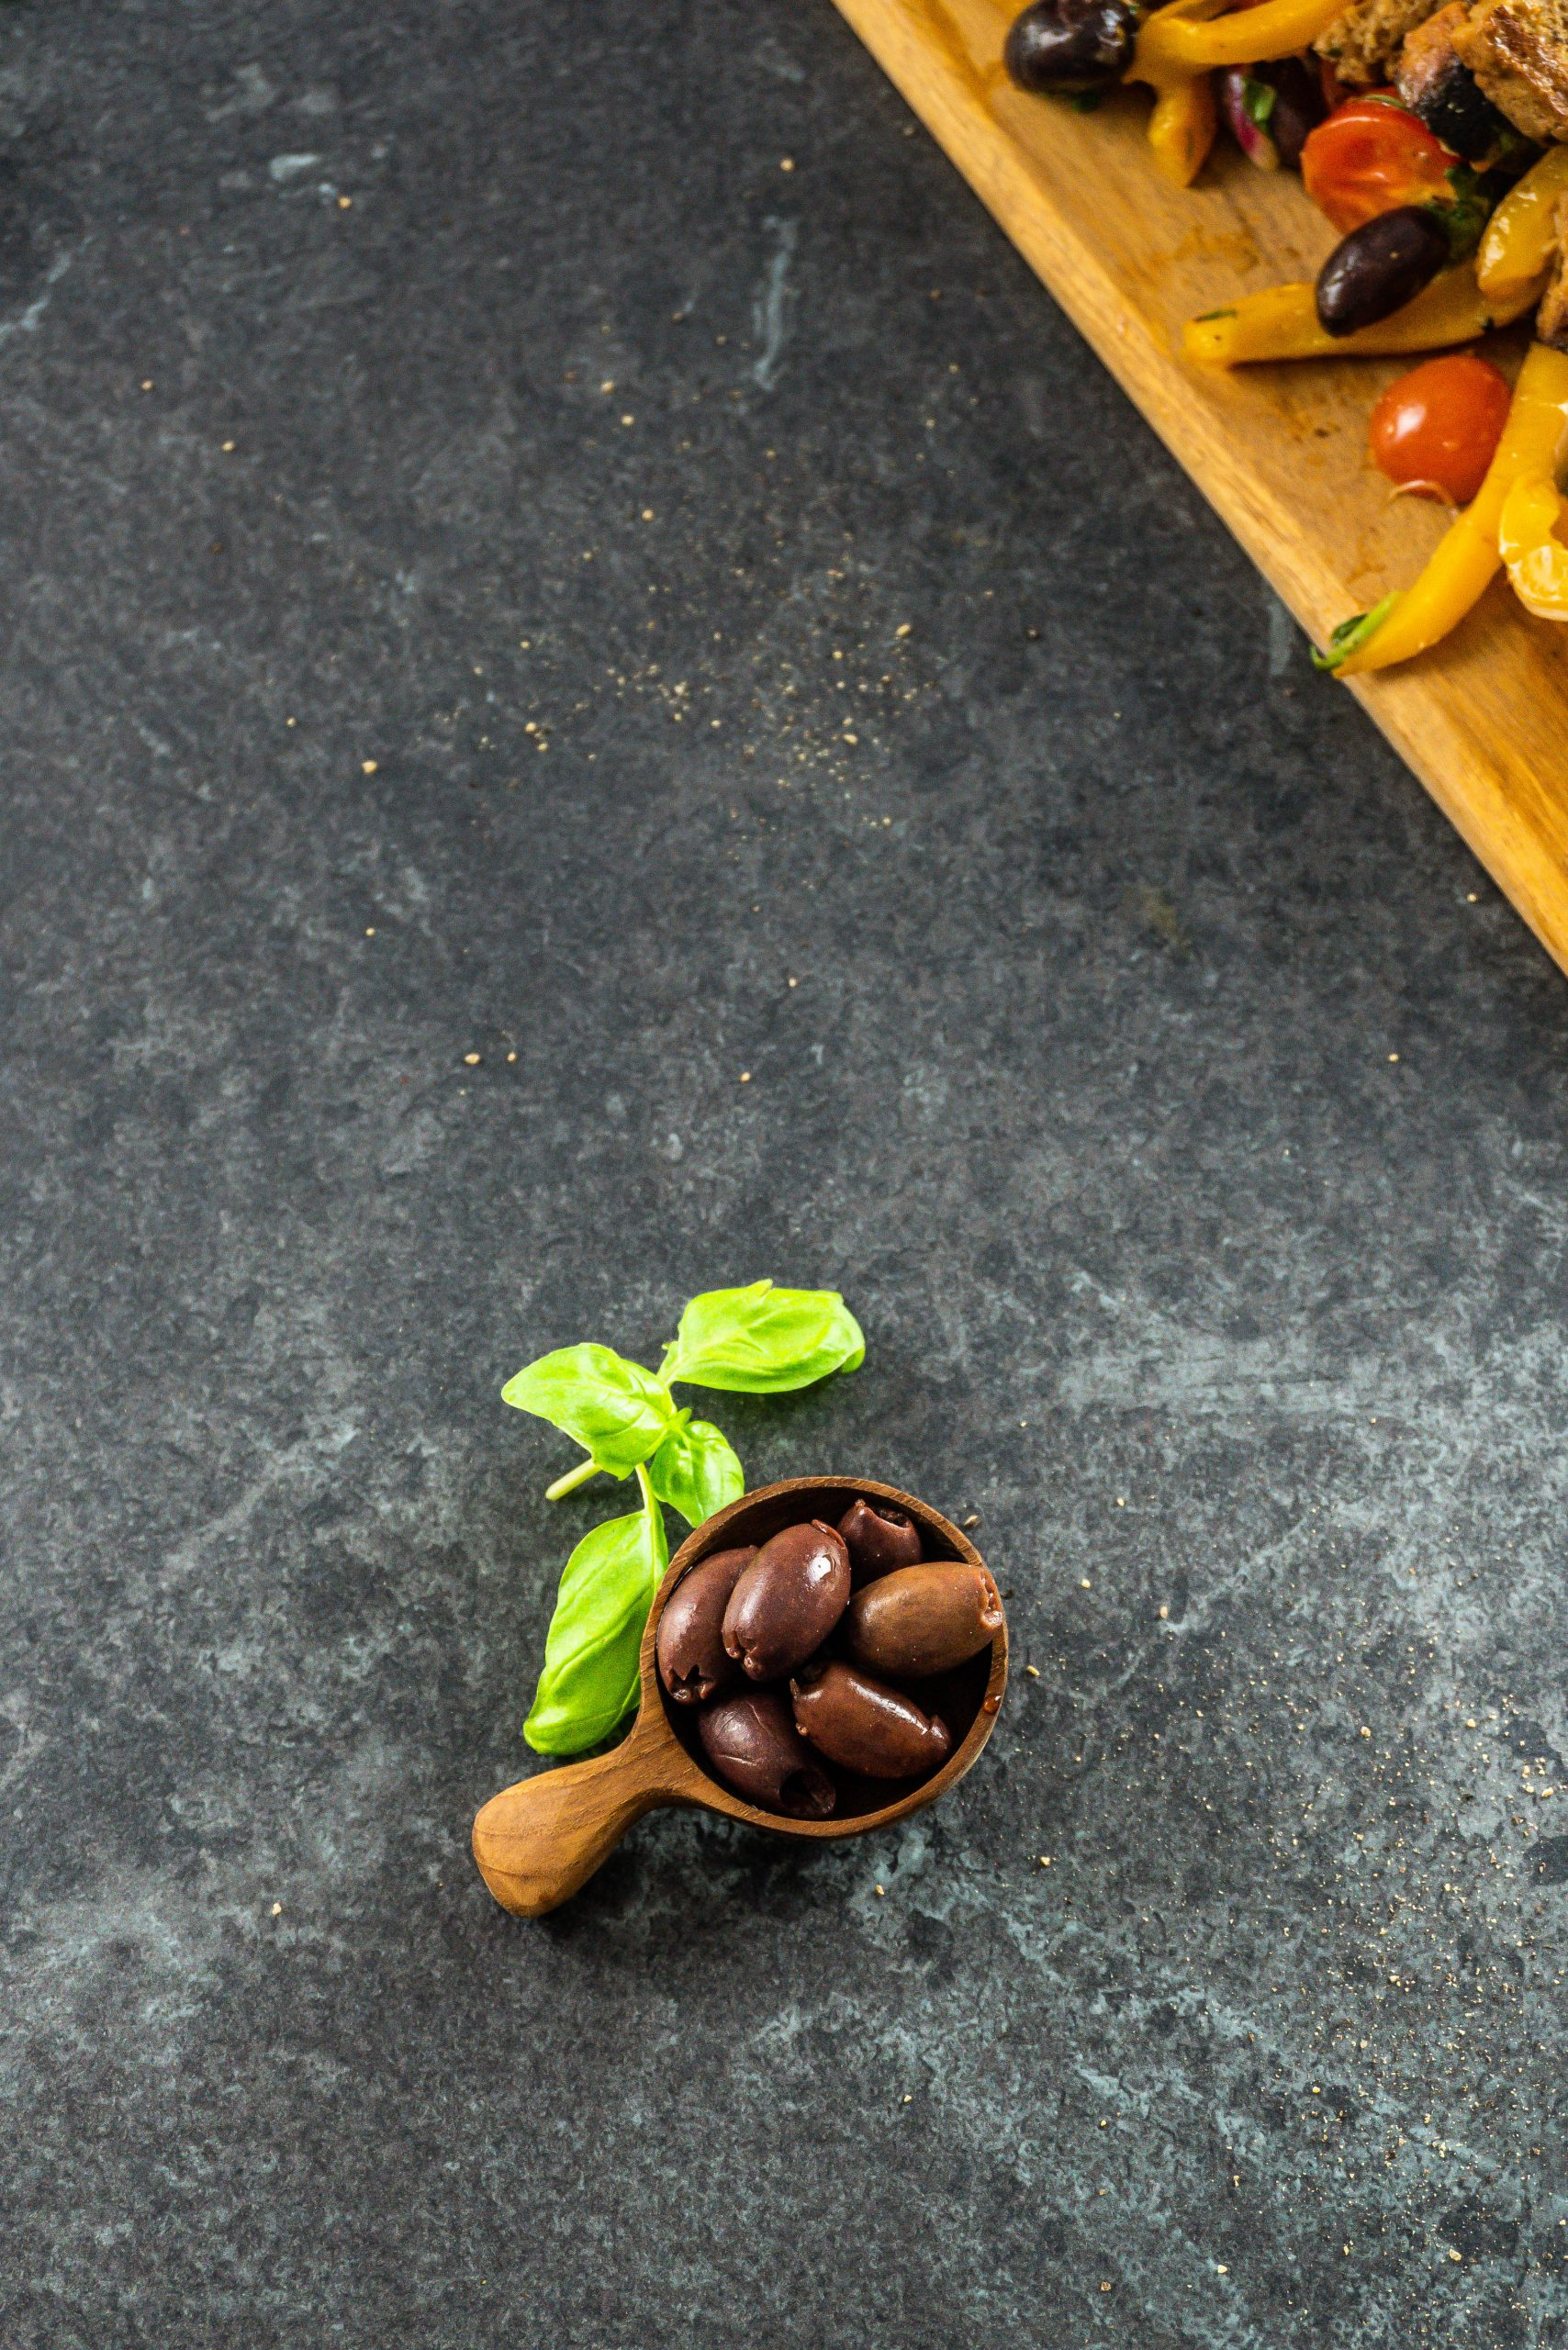 Olives in a wooden spoon with basil leaves on a dark surface